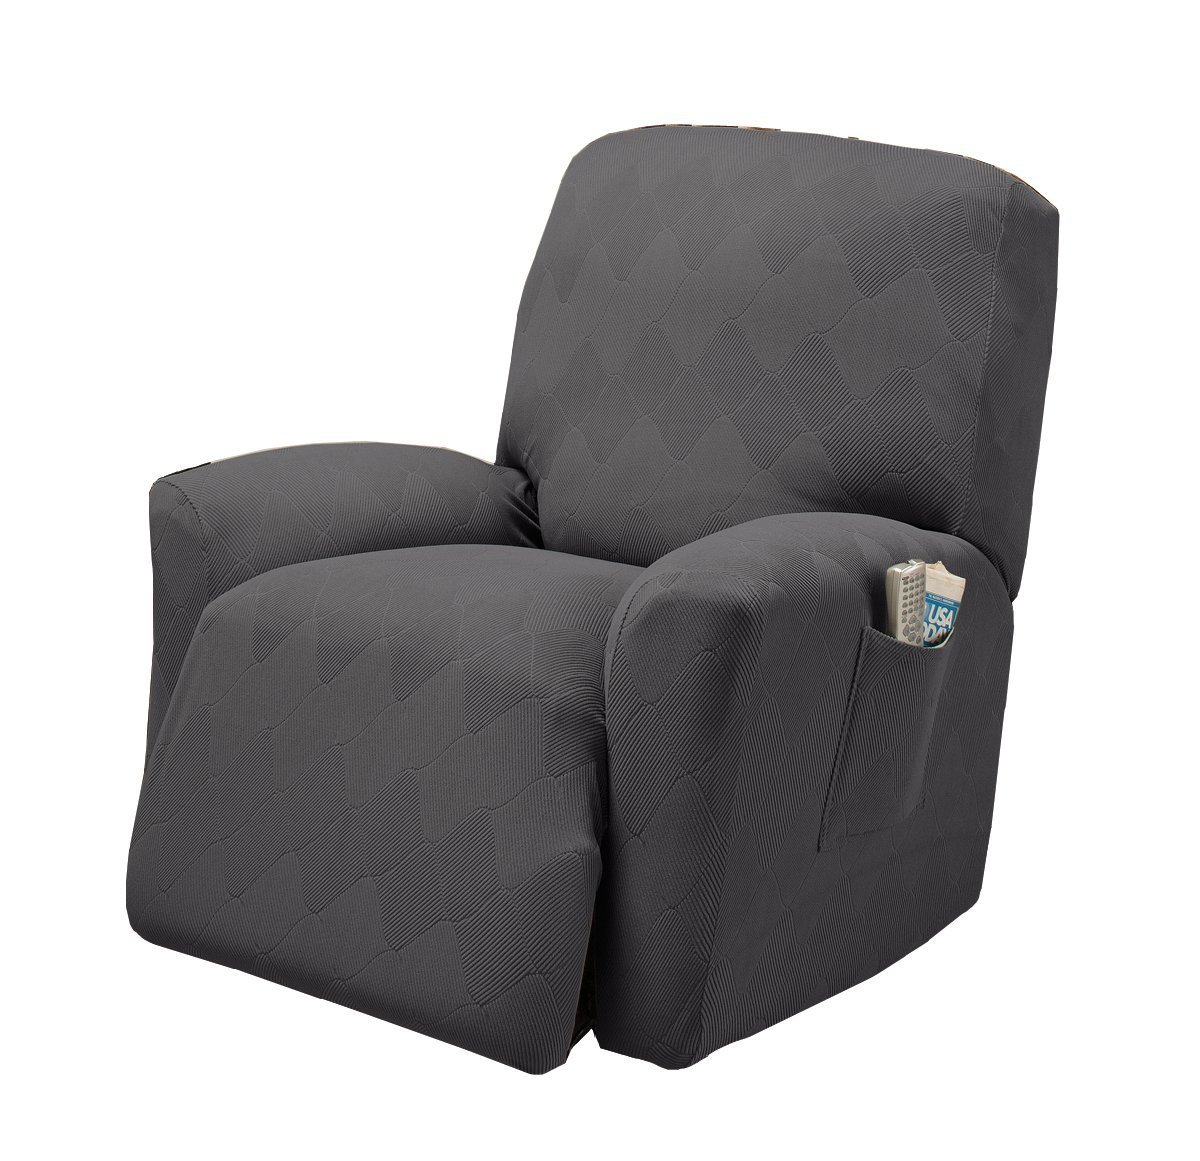 4 Best Lazy Boy Recliner Slipcover Lazyboyreclinersonline Com